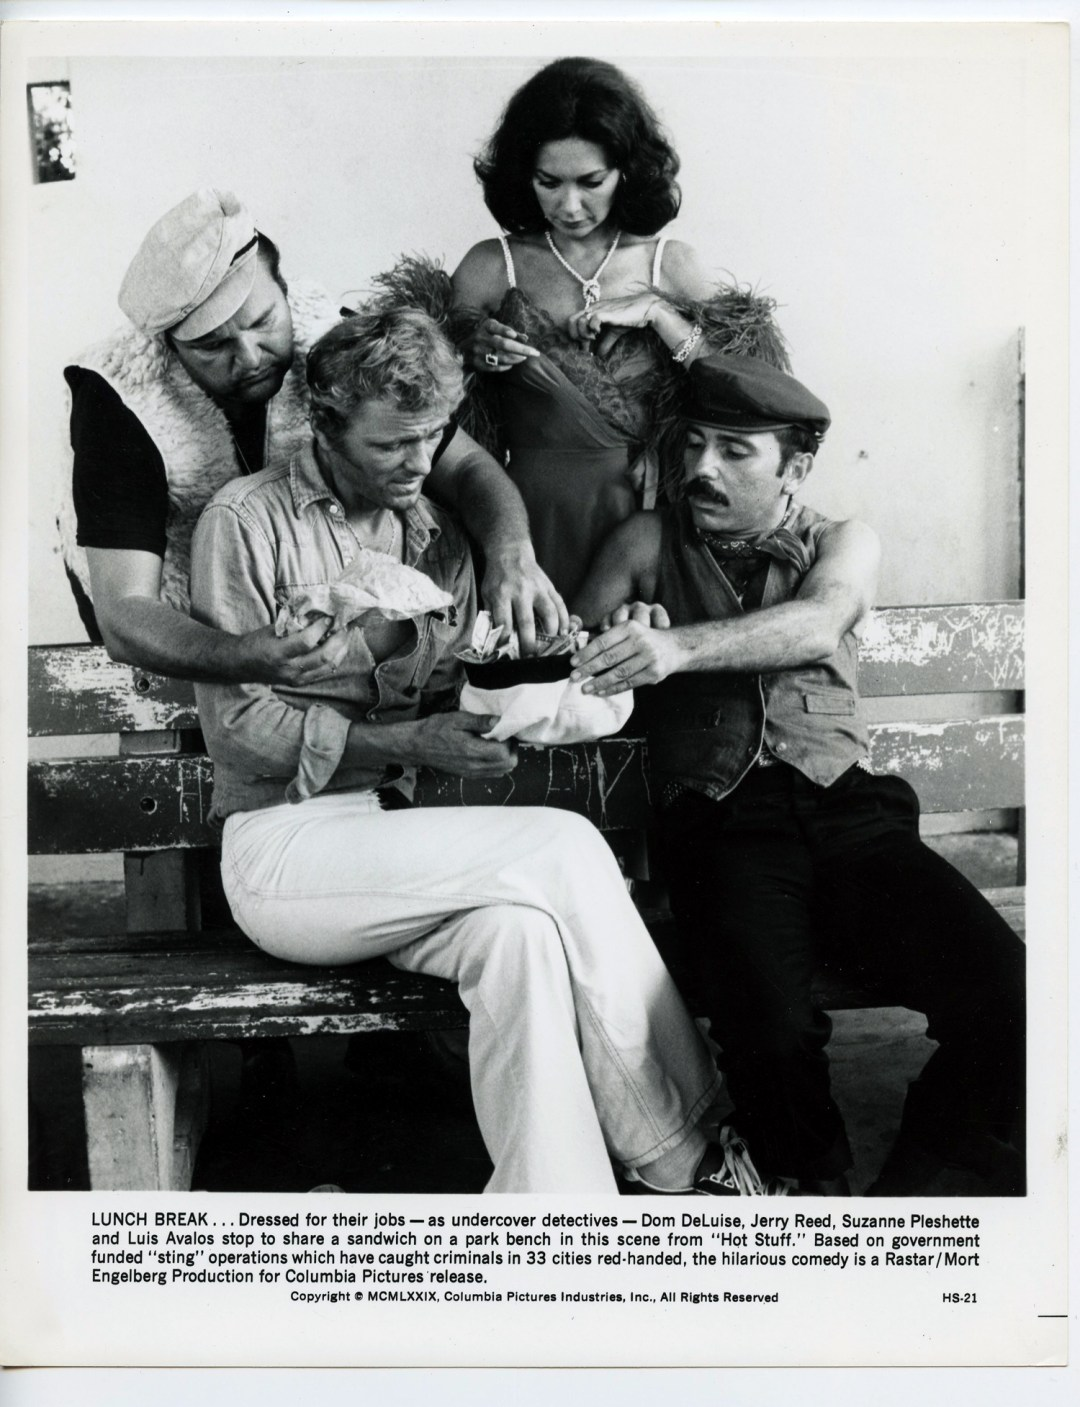 Hot Stuff Lobby Card 1979 Dom DeLuise Jerry Reed Suzanne Pleshette Louis Avalos